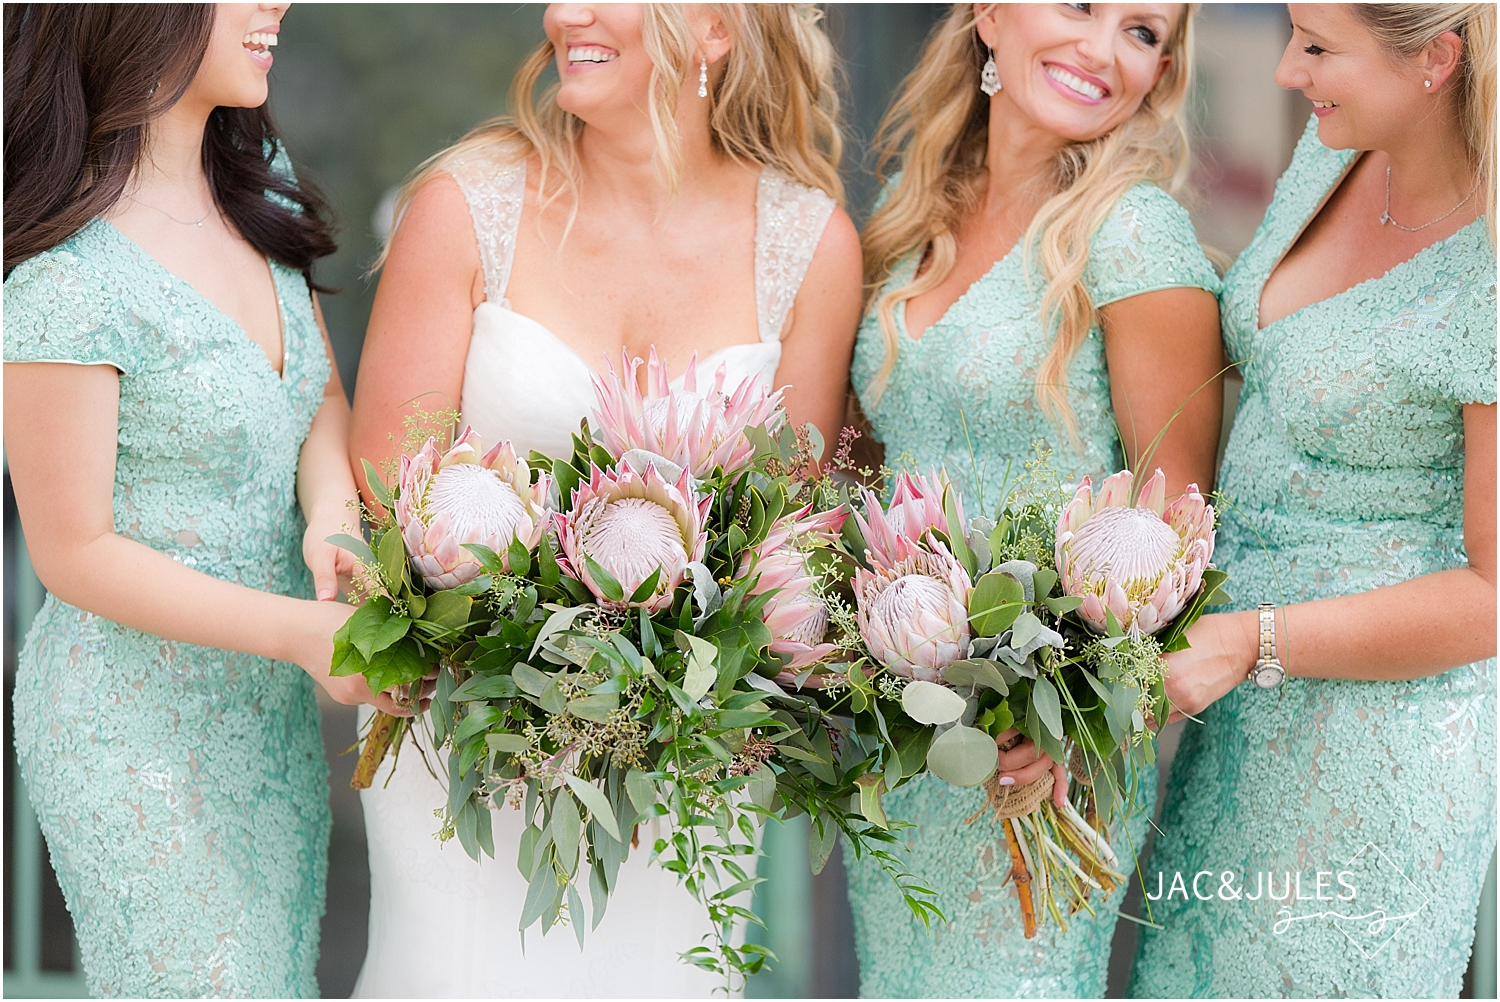 jacnjules photographs asbury wedding with bouquets by narcissus florals in toms river nj